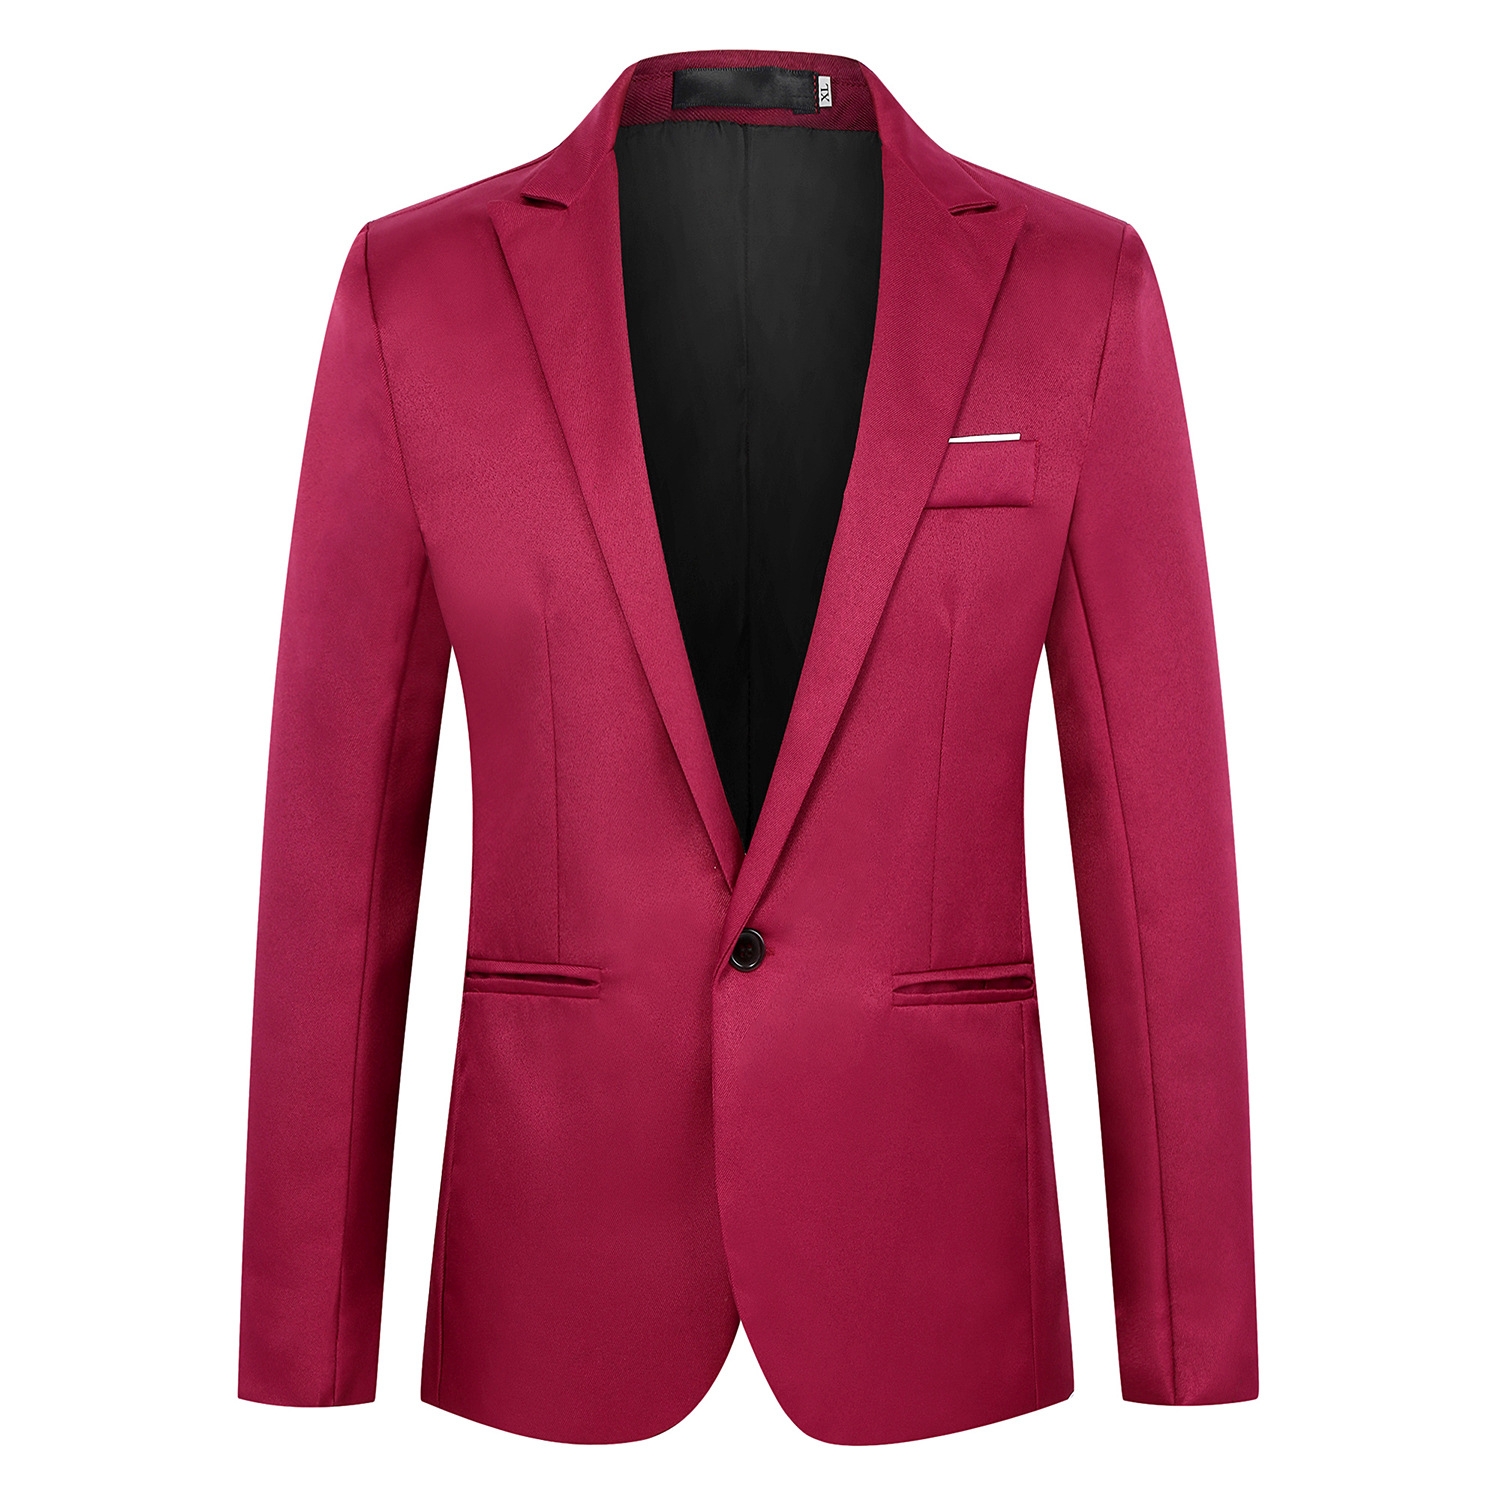 2019 Men Fashion Slim Fit Suit Korean-style Closure Collar One-Button Casual Simple Youth Small Suit